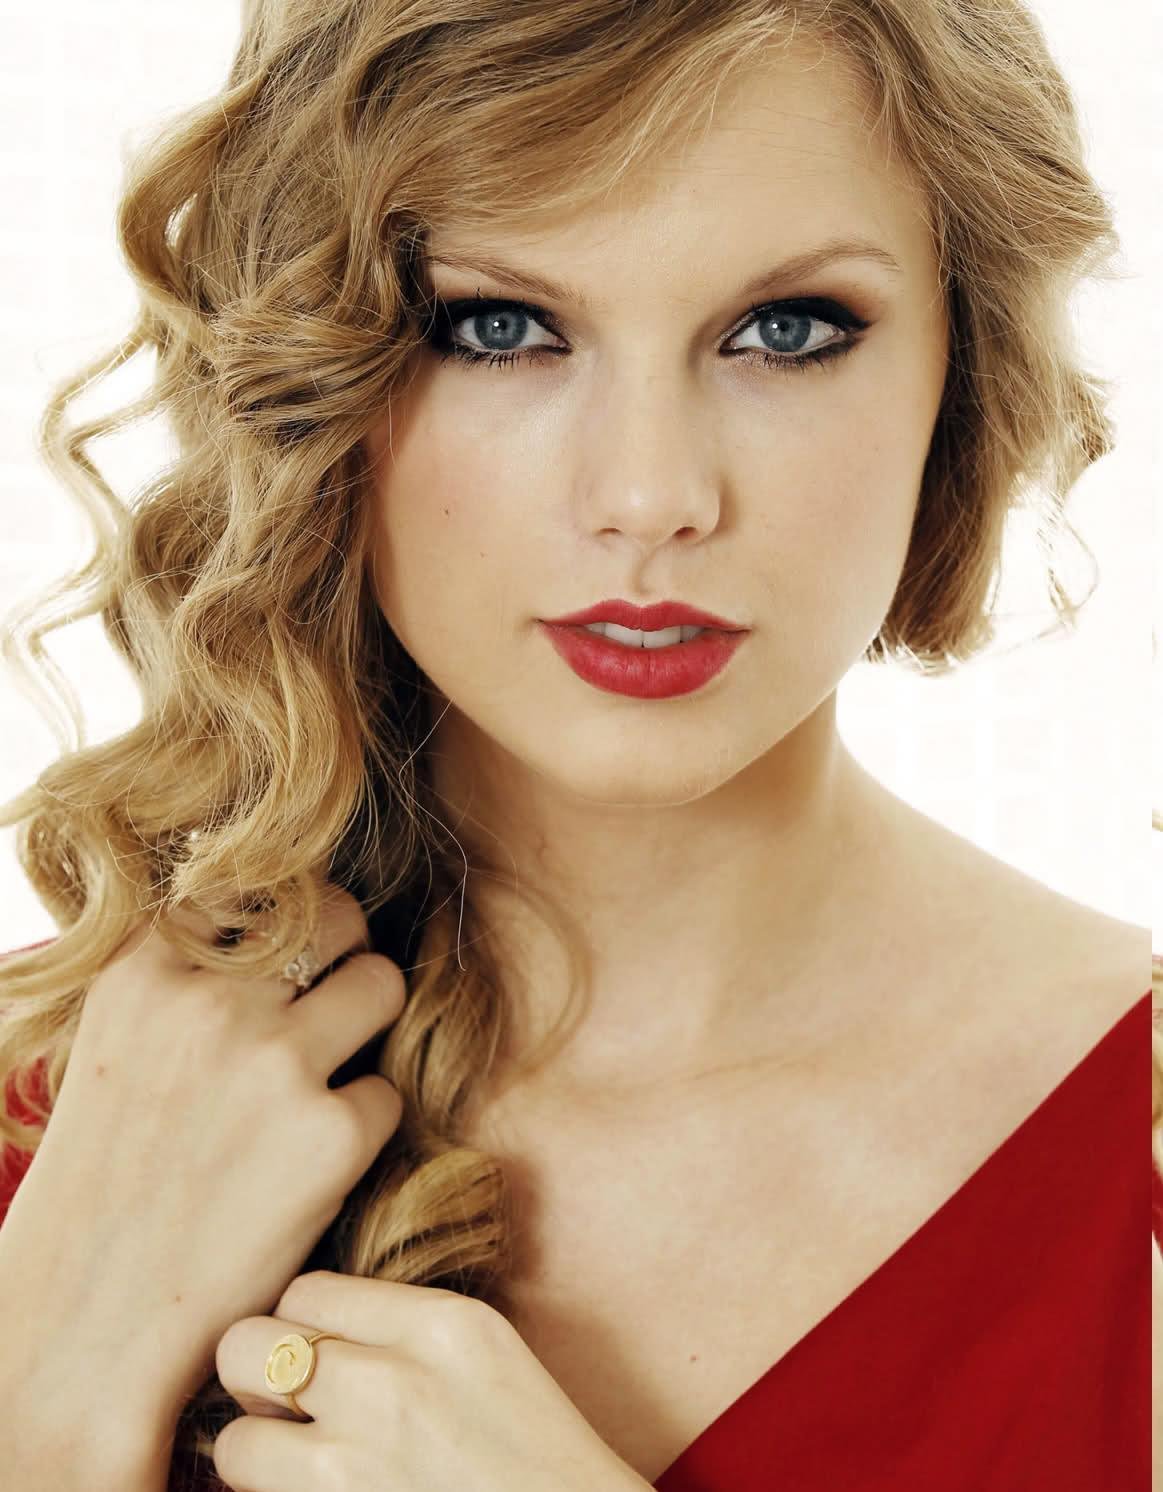 Tim Tebow's girlfriend Taylor Swift